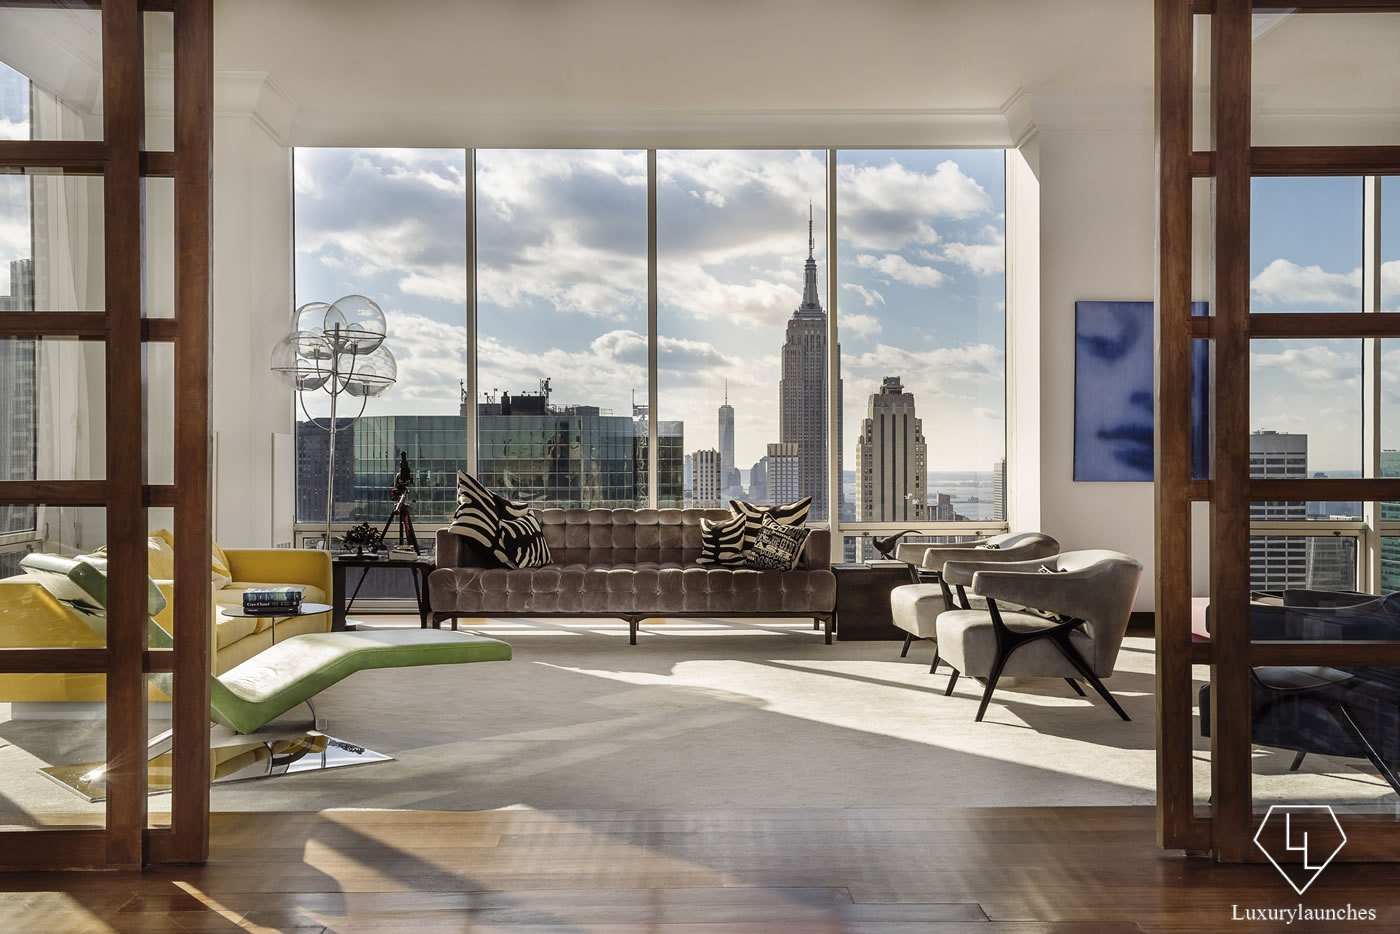 Gucci 39 s 38 million penthouse in manhattan is up for sale for Penthouses for sale in nyc